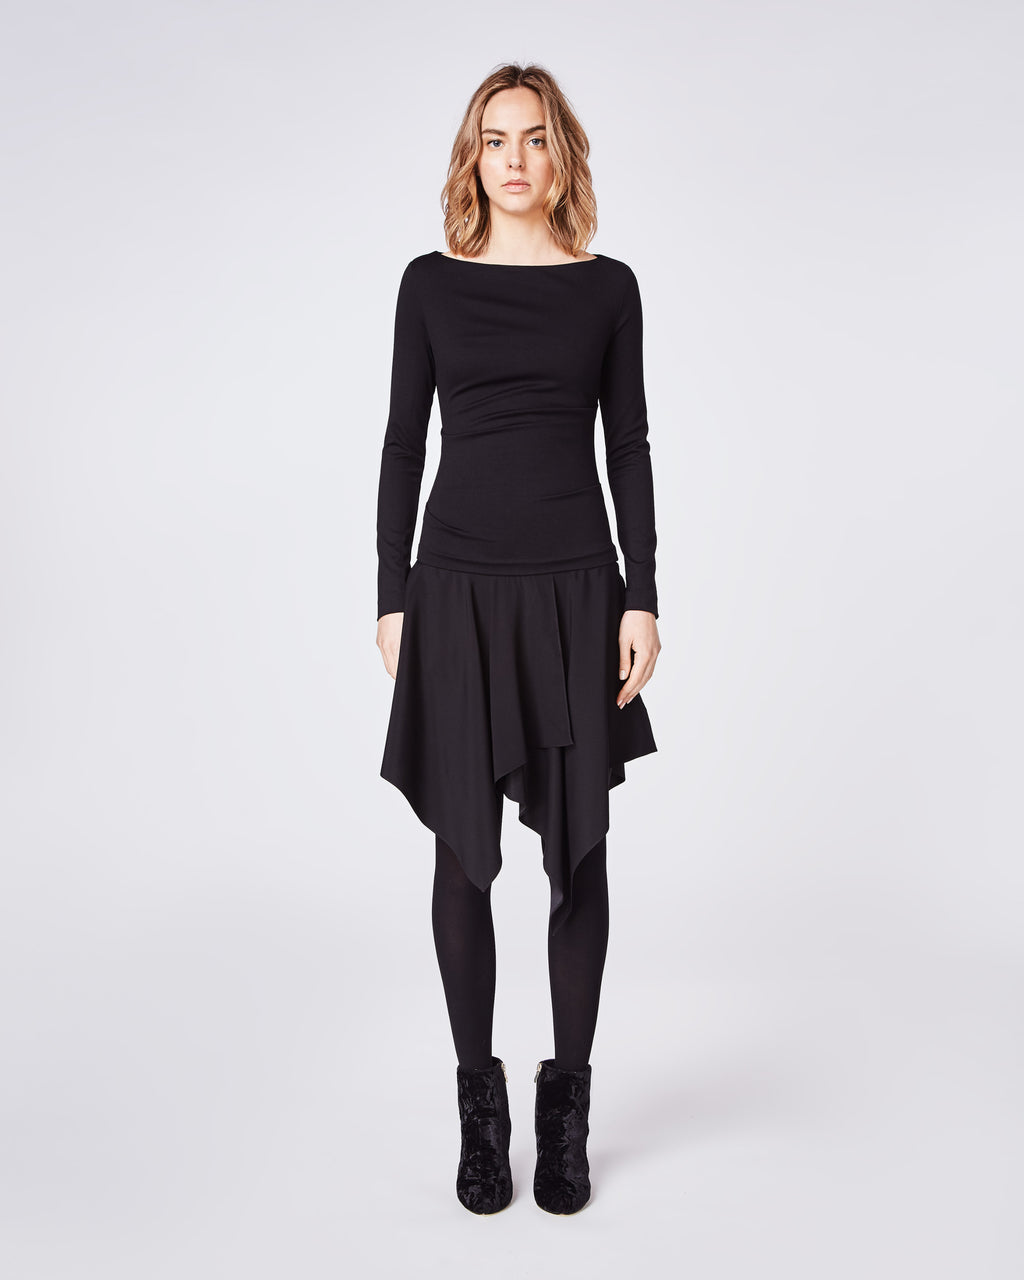 BN10174 - PONTE SWEATSHIRT DRESS - dresses - short - The cozy, wear to work mixed material fitted dress. It features a drop waist and assymetrical ruffled hem. Pair back with tights and classic boot for fall into winter.